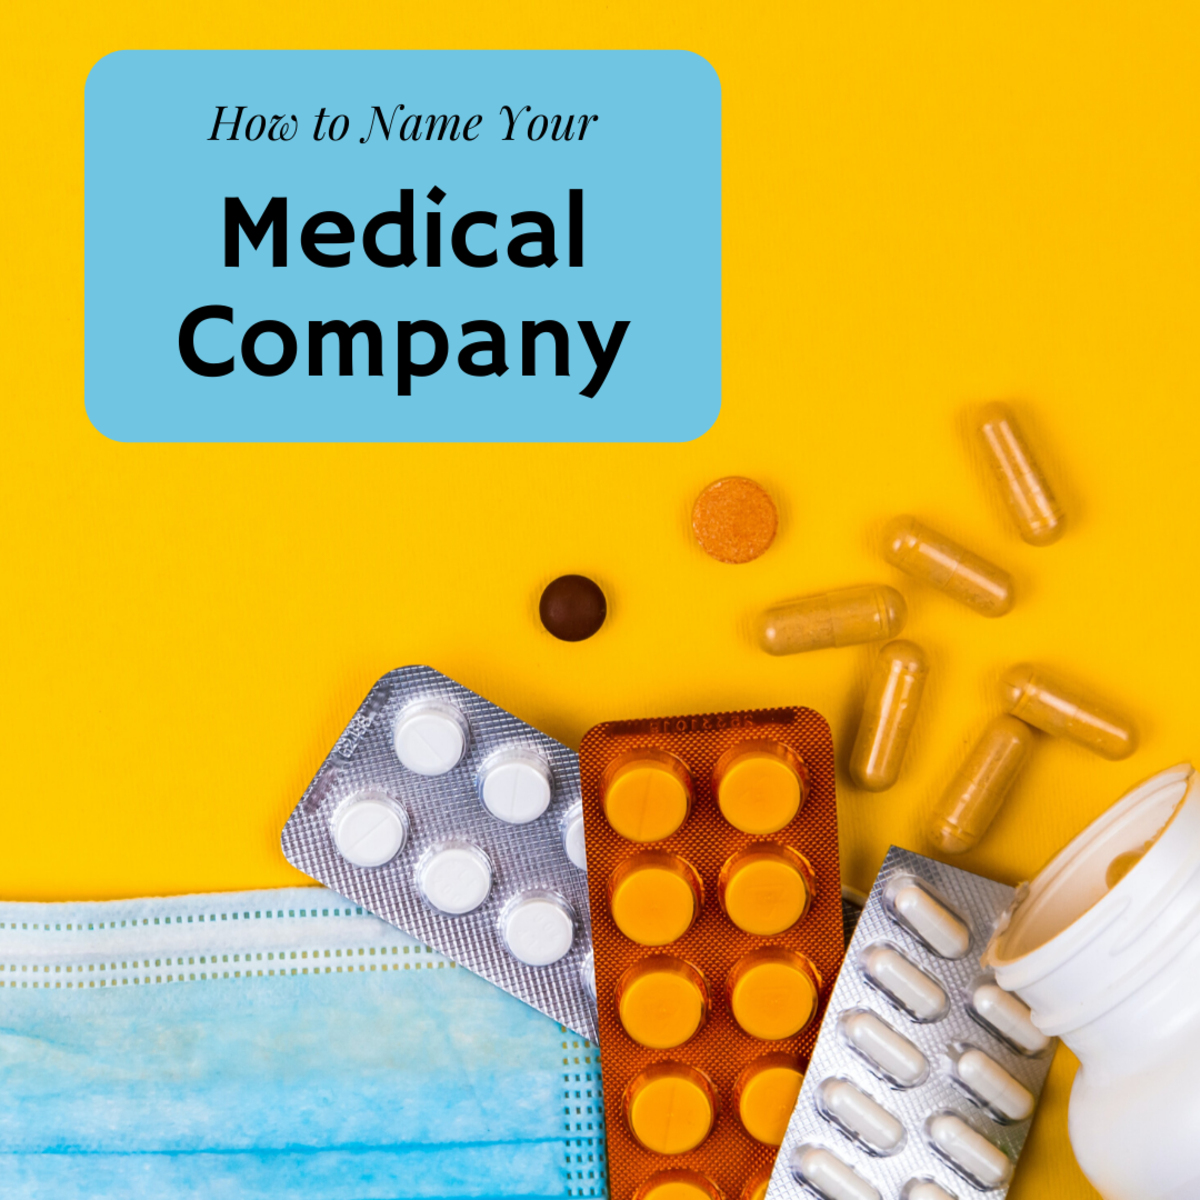 Everyone needs medical care sooner or later. A health-related company can be a good business opportunity.